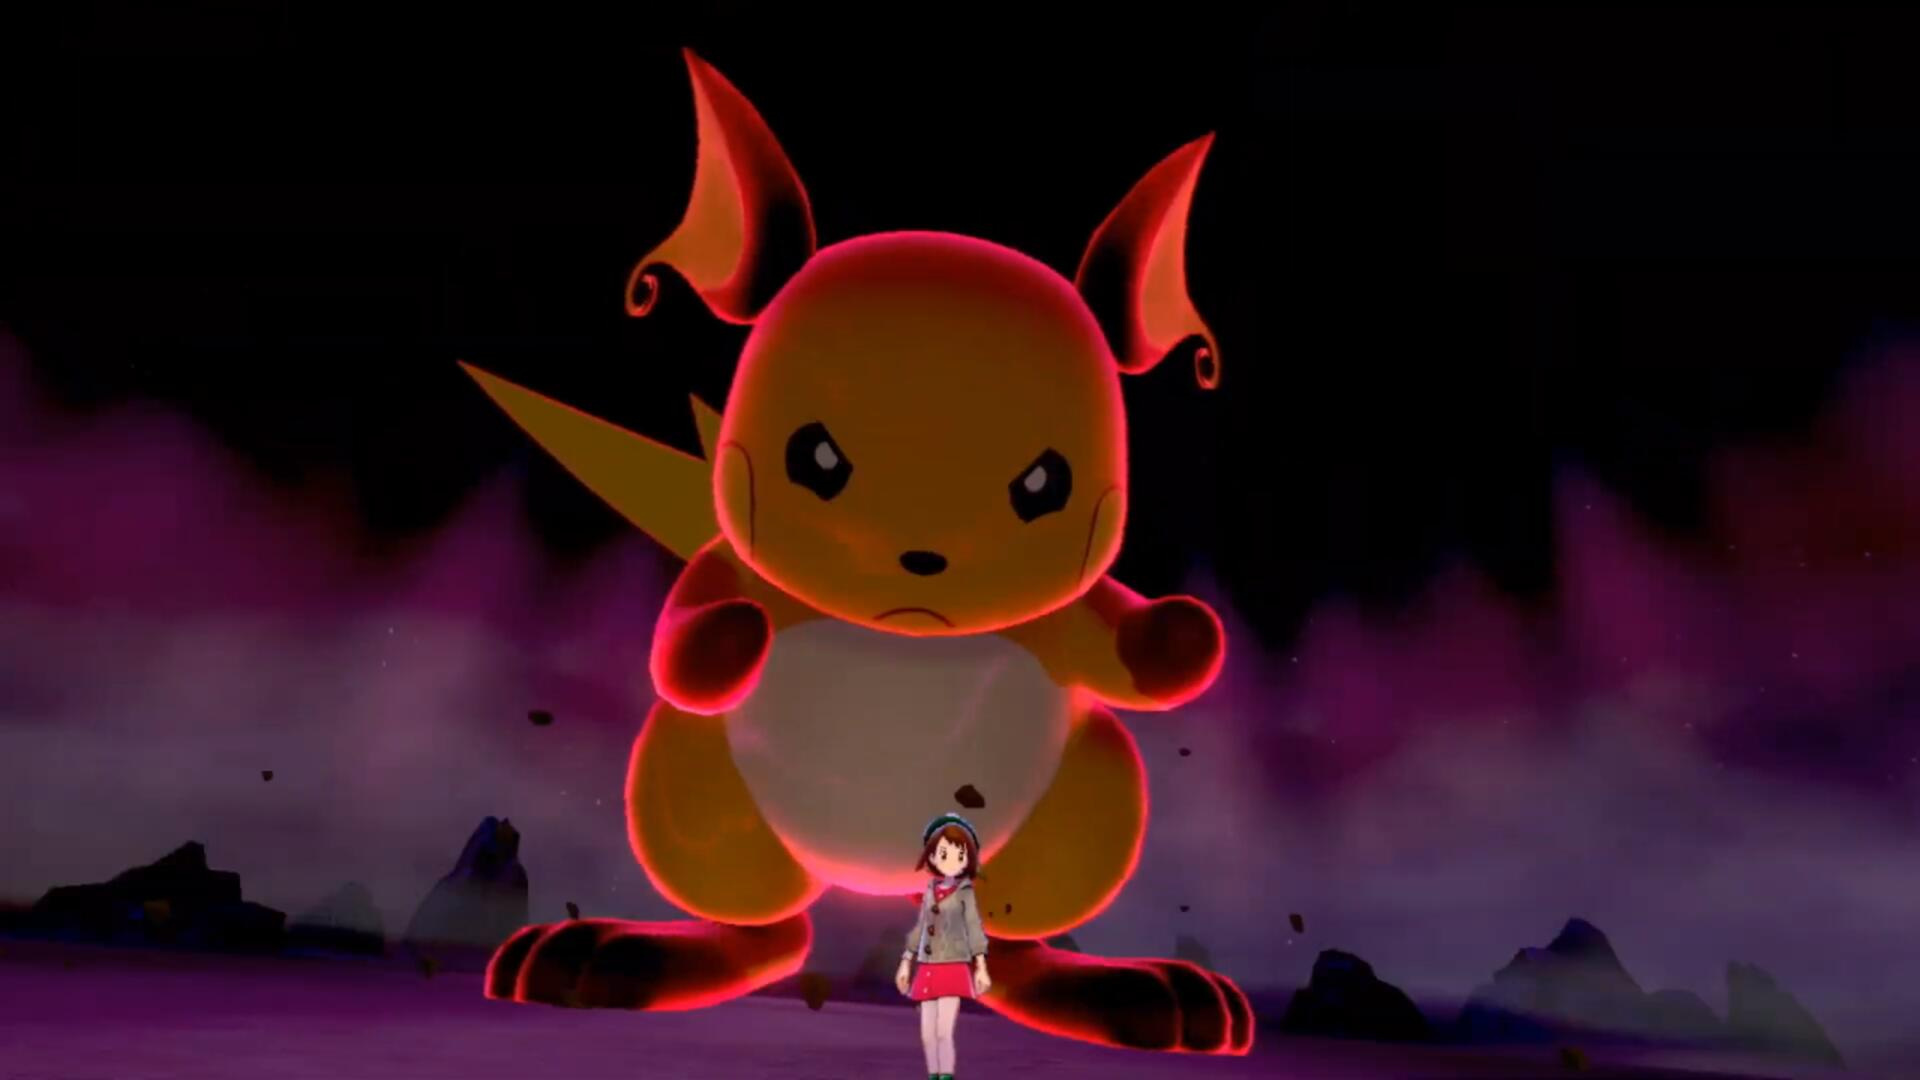 Pokemon Sword and Shield Has Giant Pokemon, Four-Player Raids, and a November Release Date